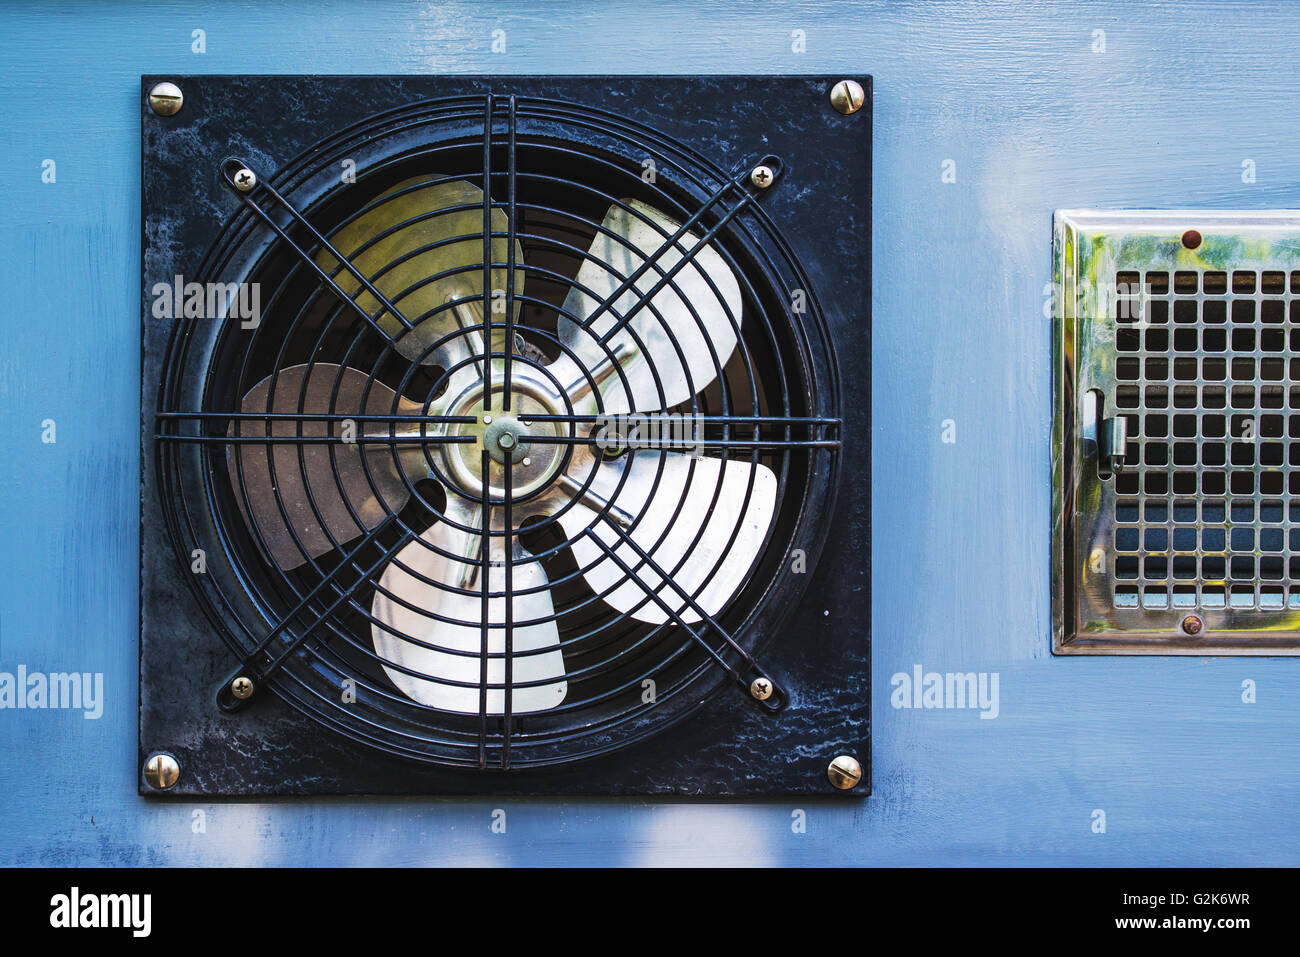 Axial cooling fan blower in garage - Stock Image